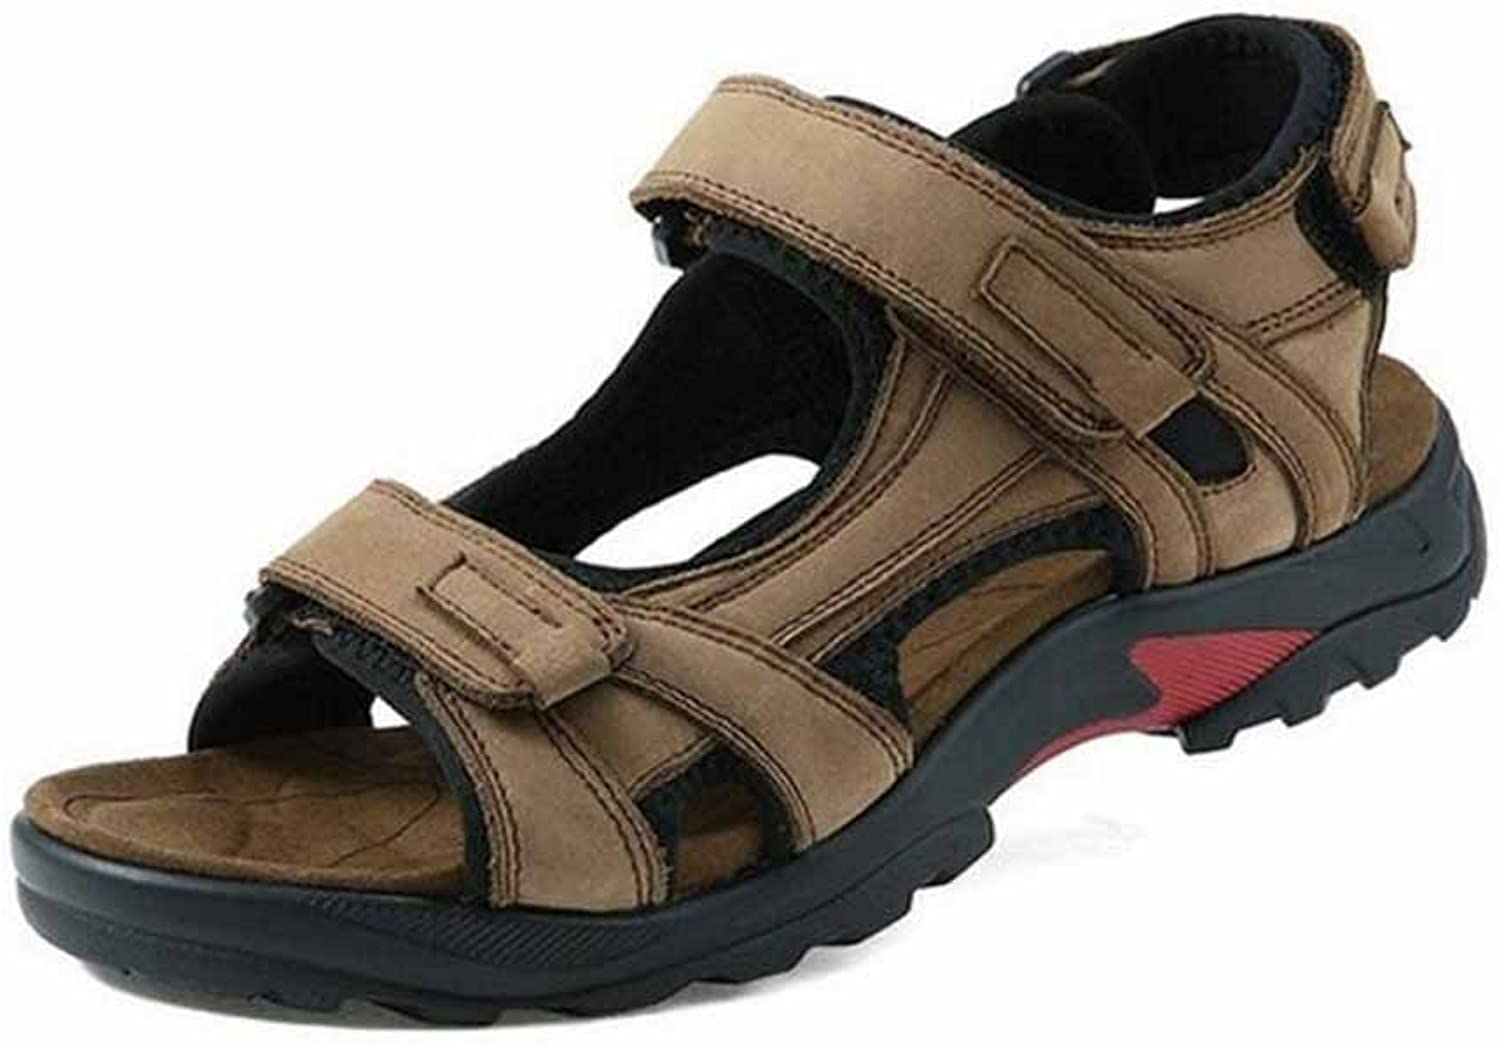 GLSHI Men Outdoor Open Toed Sandals Men Leather Beach shoes Sports Sandals Large Size